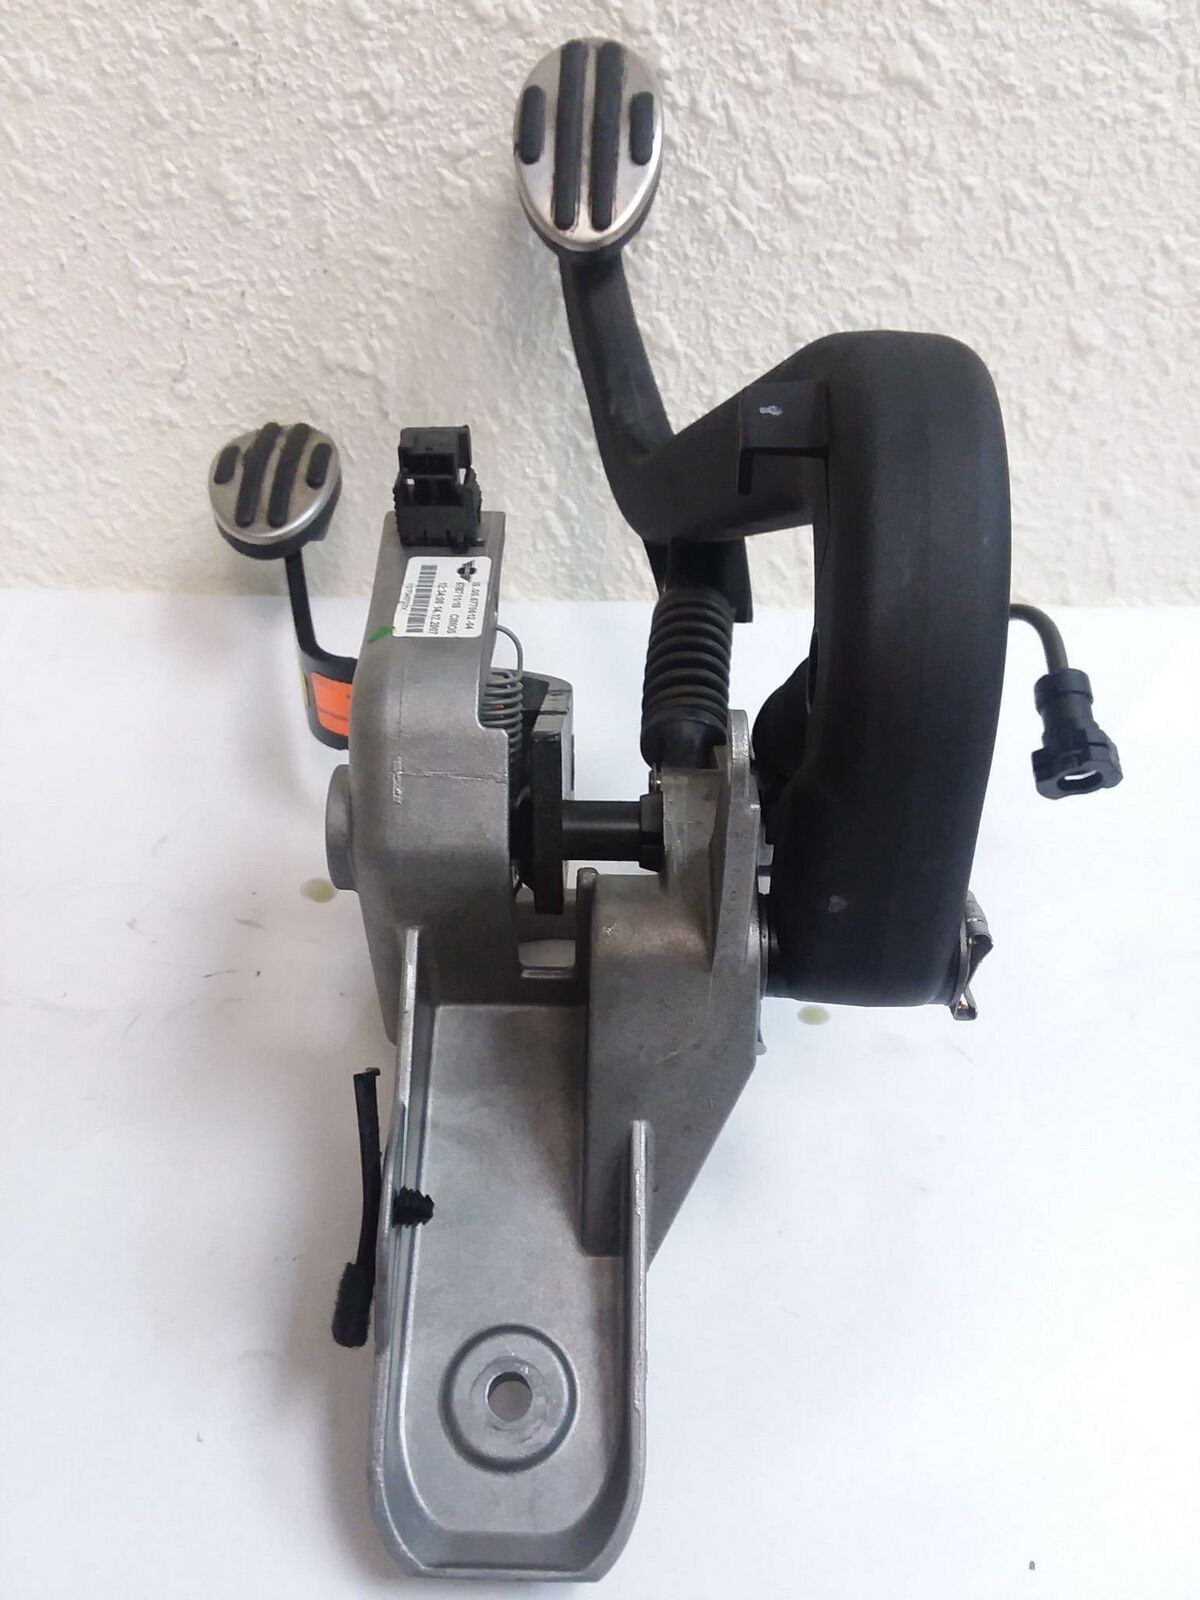 2007 BMW MINI COOPER S R56 CLUTCH & BRAKE STOP PEDAL ASSEMBLY FACTORY OEM